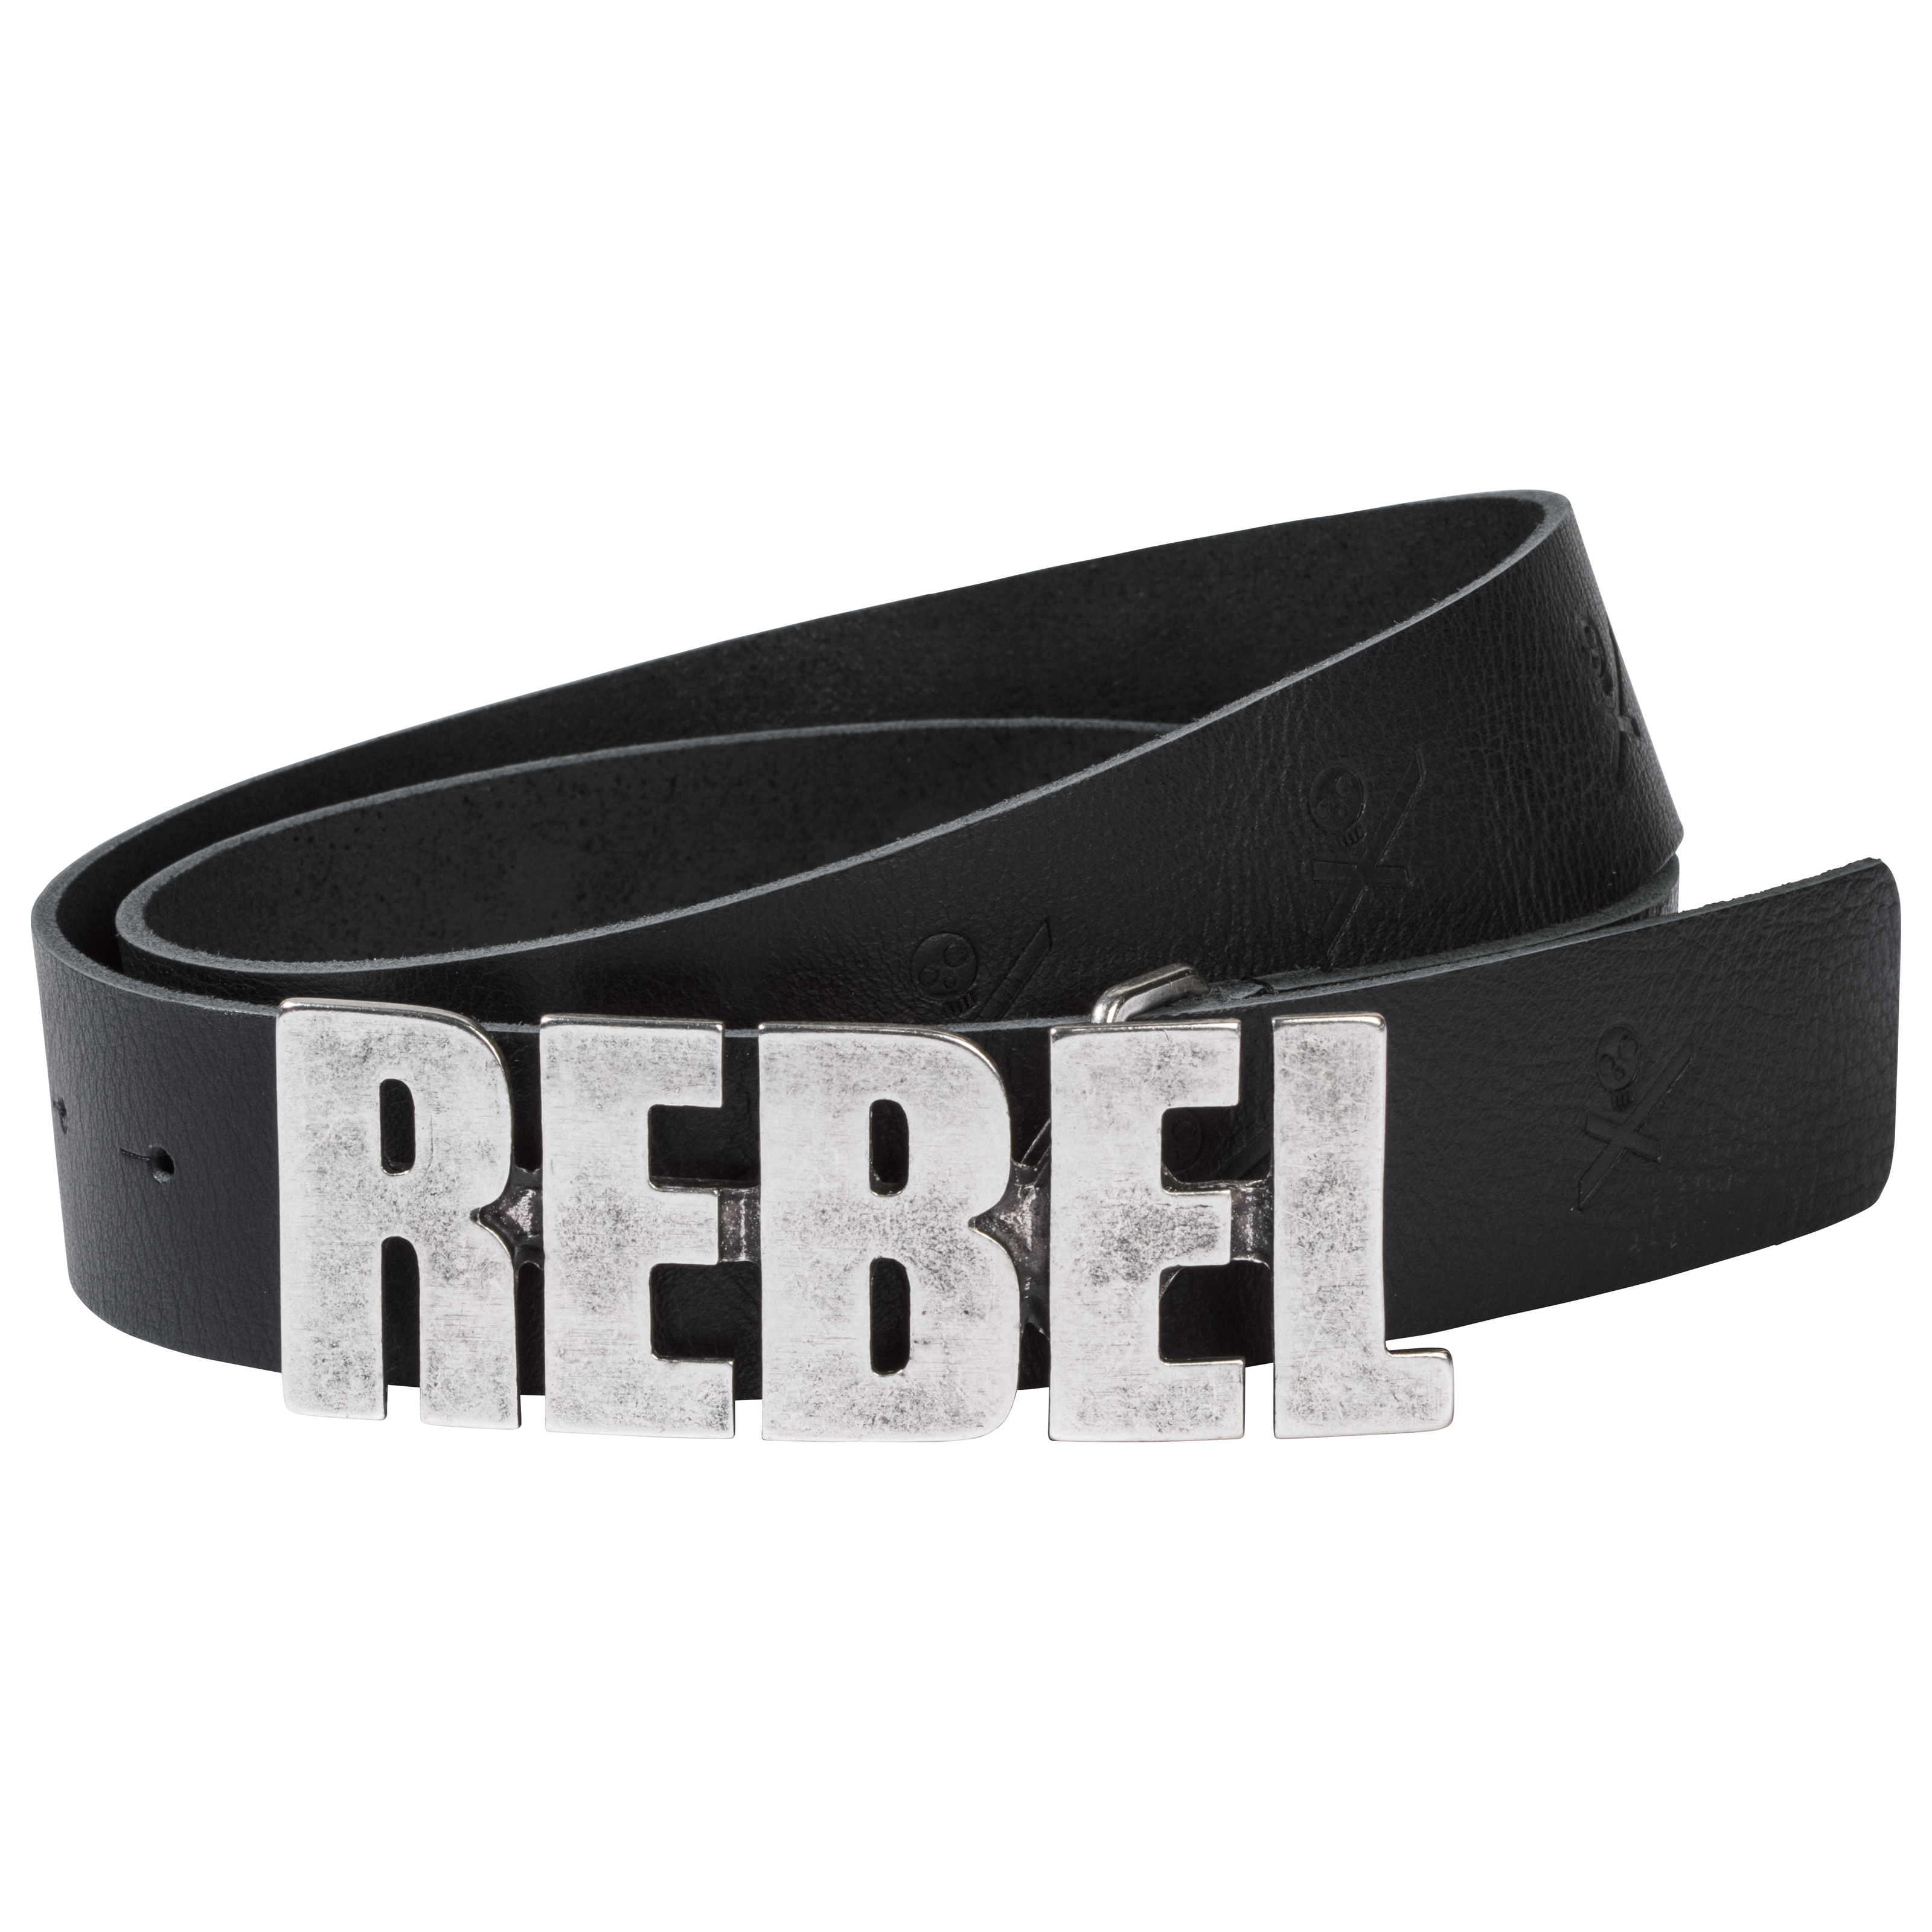 HEAD RACE BELT - ( BK) - 2020